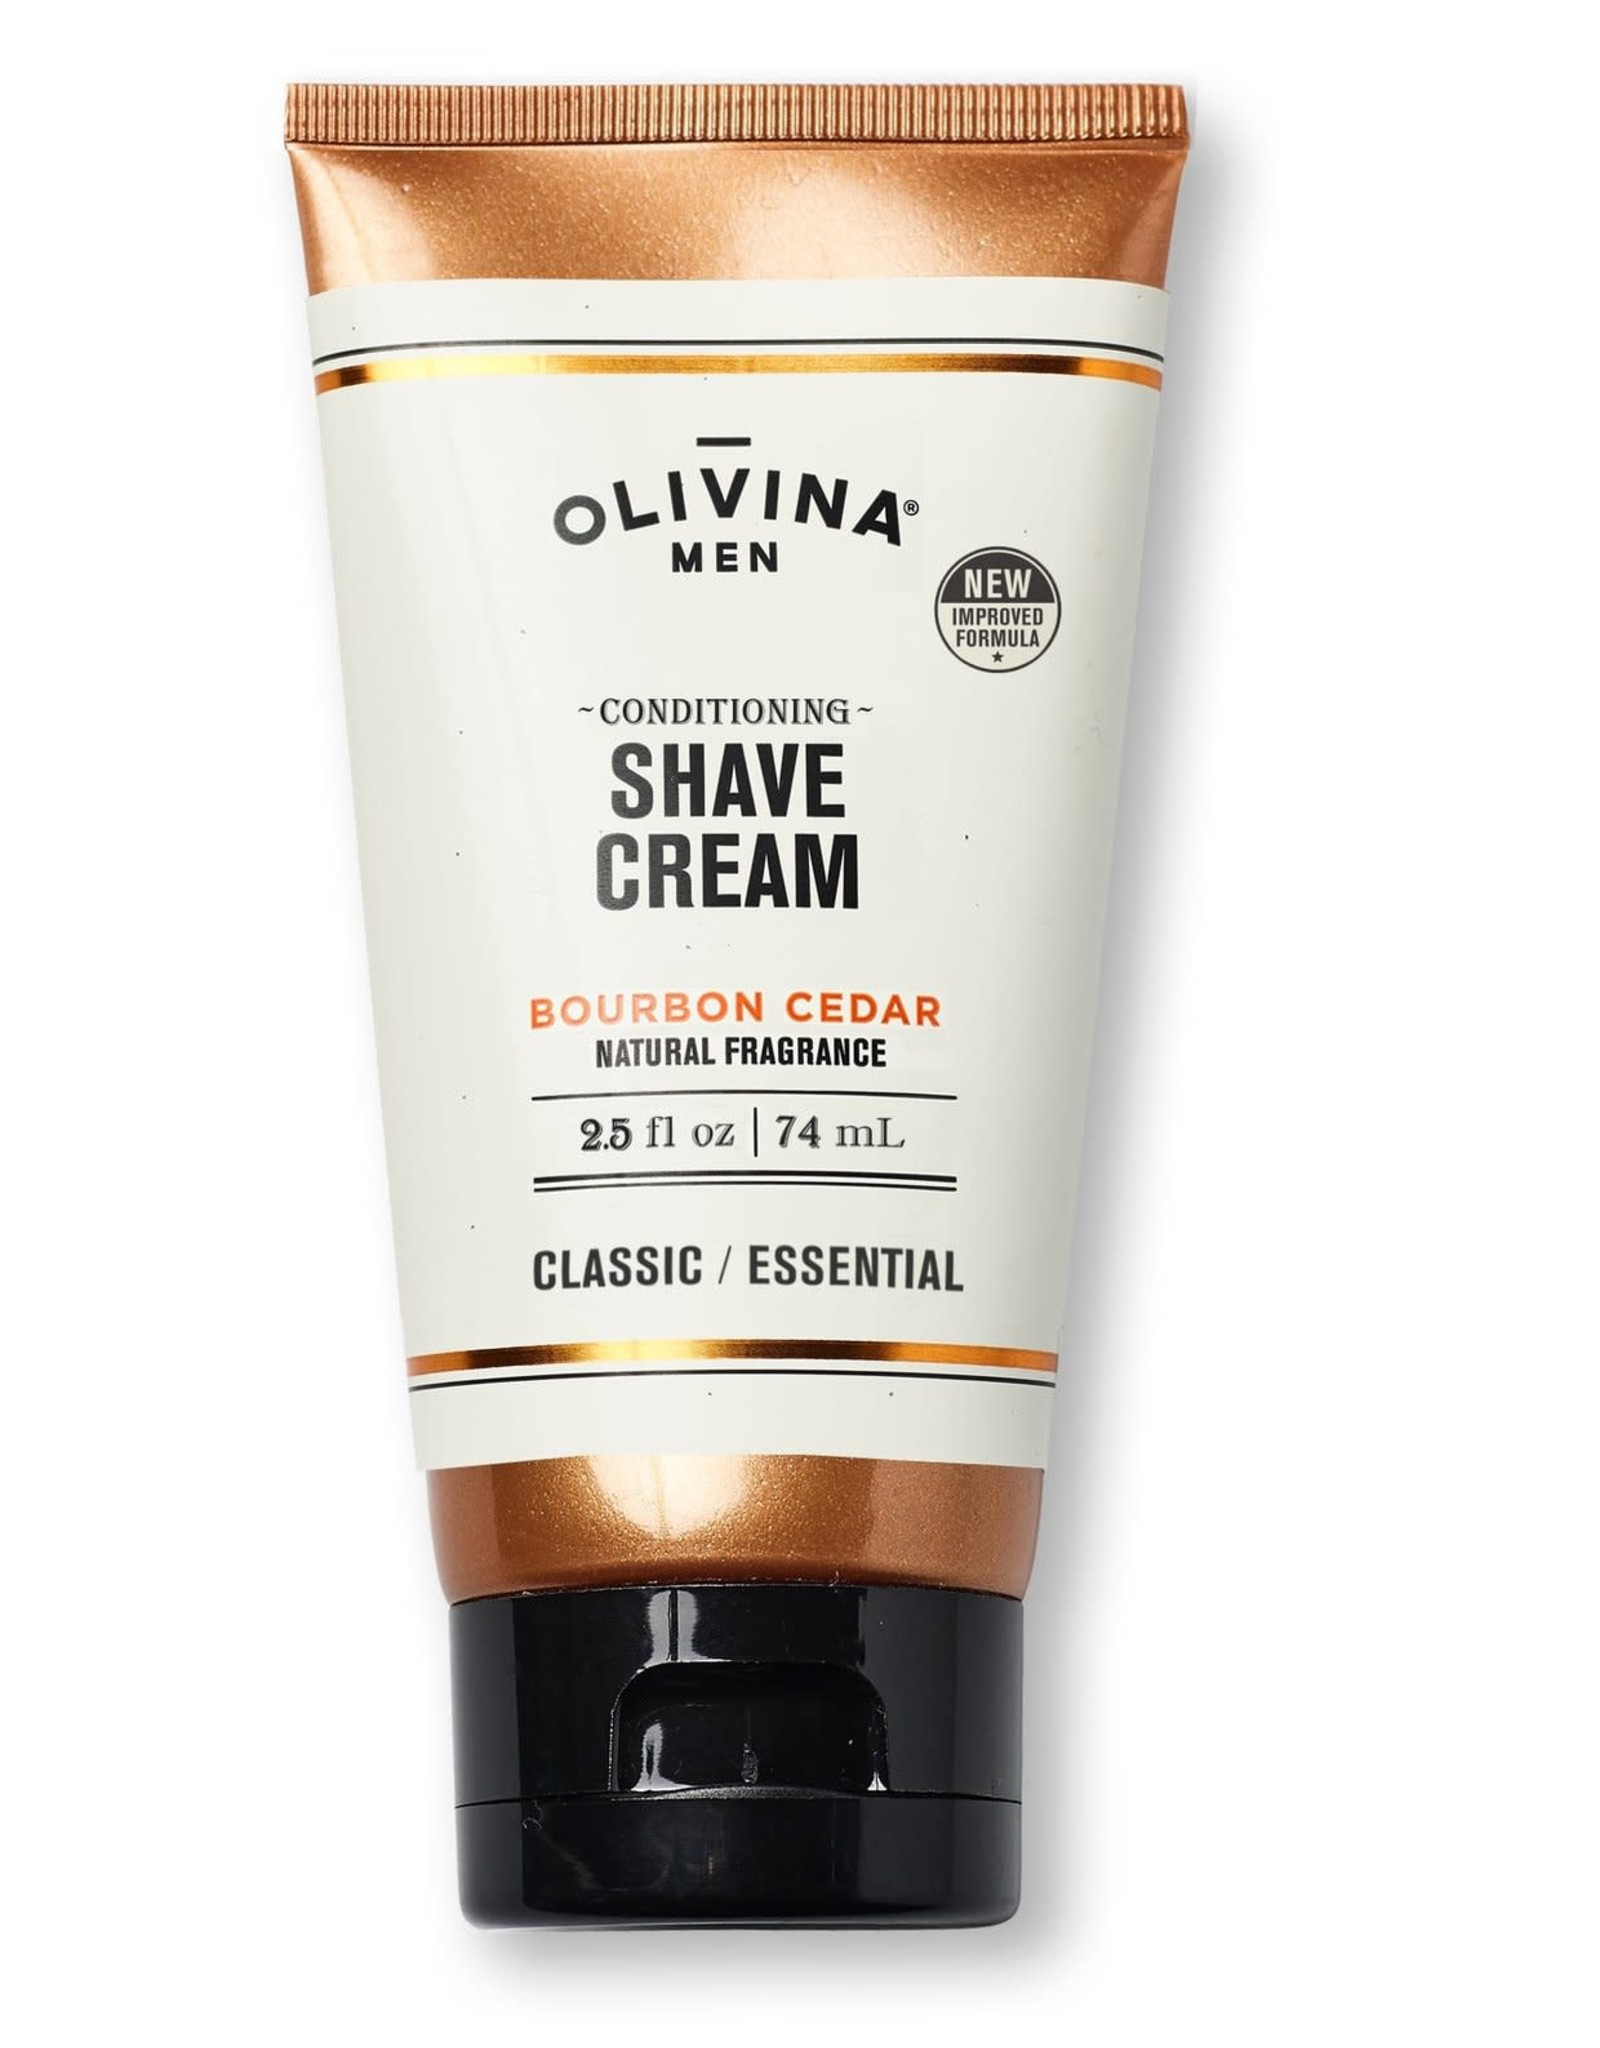 Olivina Men Shave Cream-Bourbon Cedar